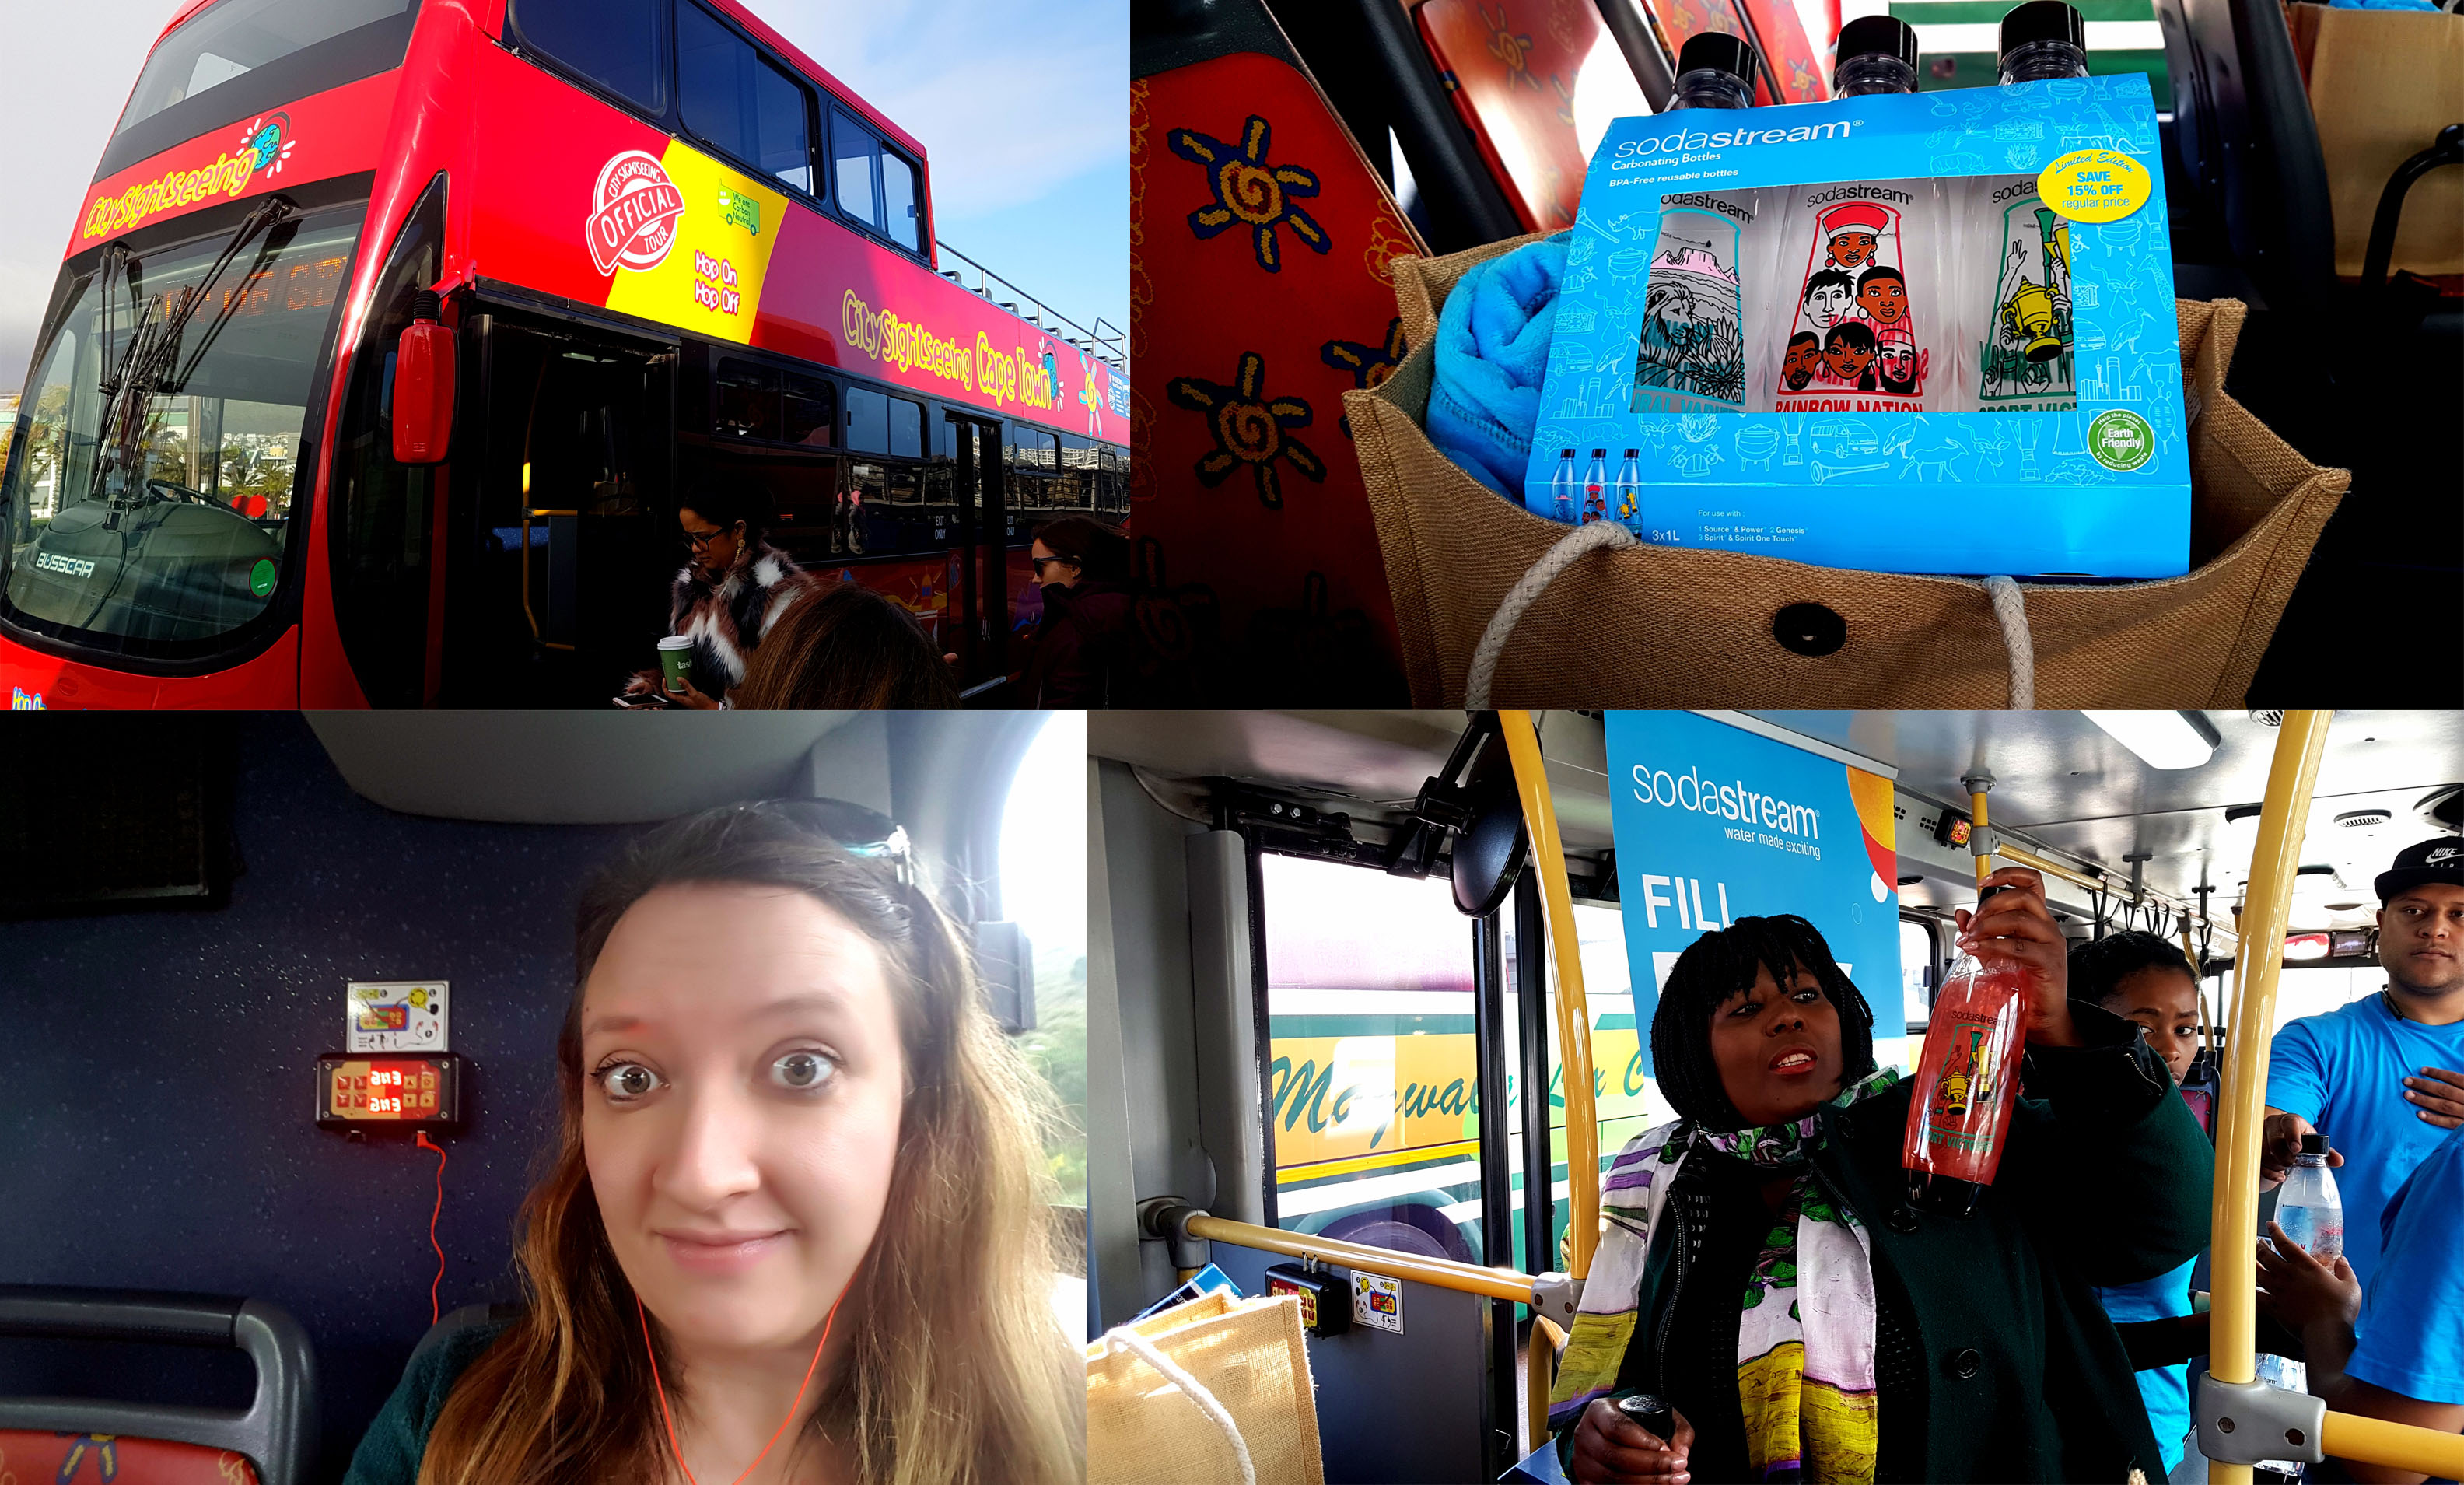 City Sightseeing bus tour, anyone? This was another media event, for the launch of SodaStream's new sustaianle bottles - we also sampled their non-alcoholic pina colada and pink mojito flavours. More on Bizcommunity soon!